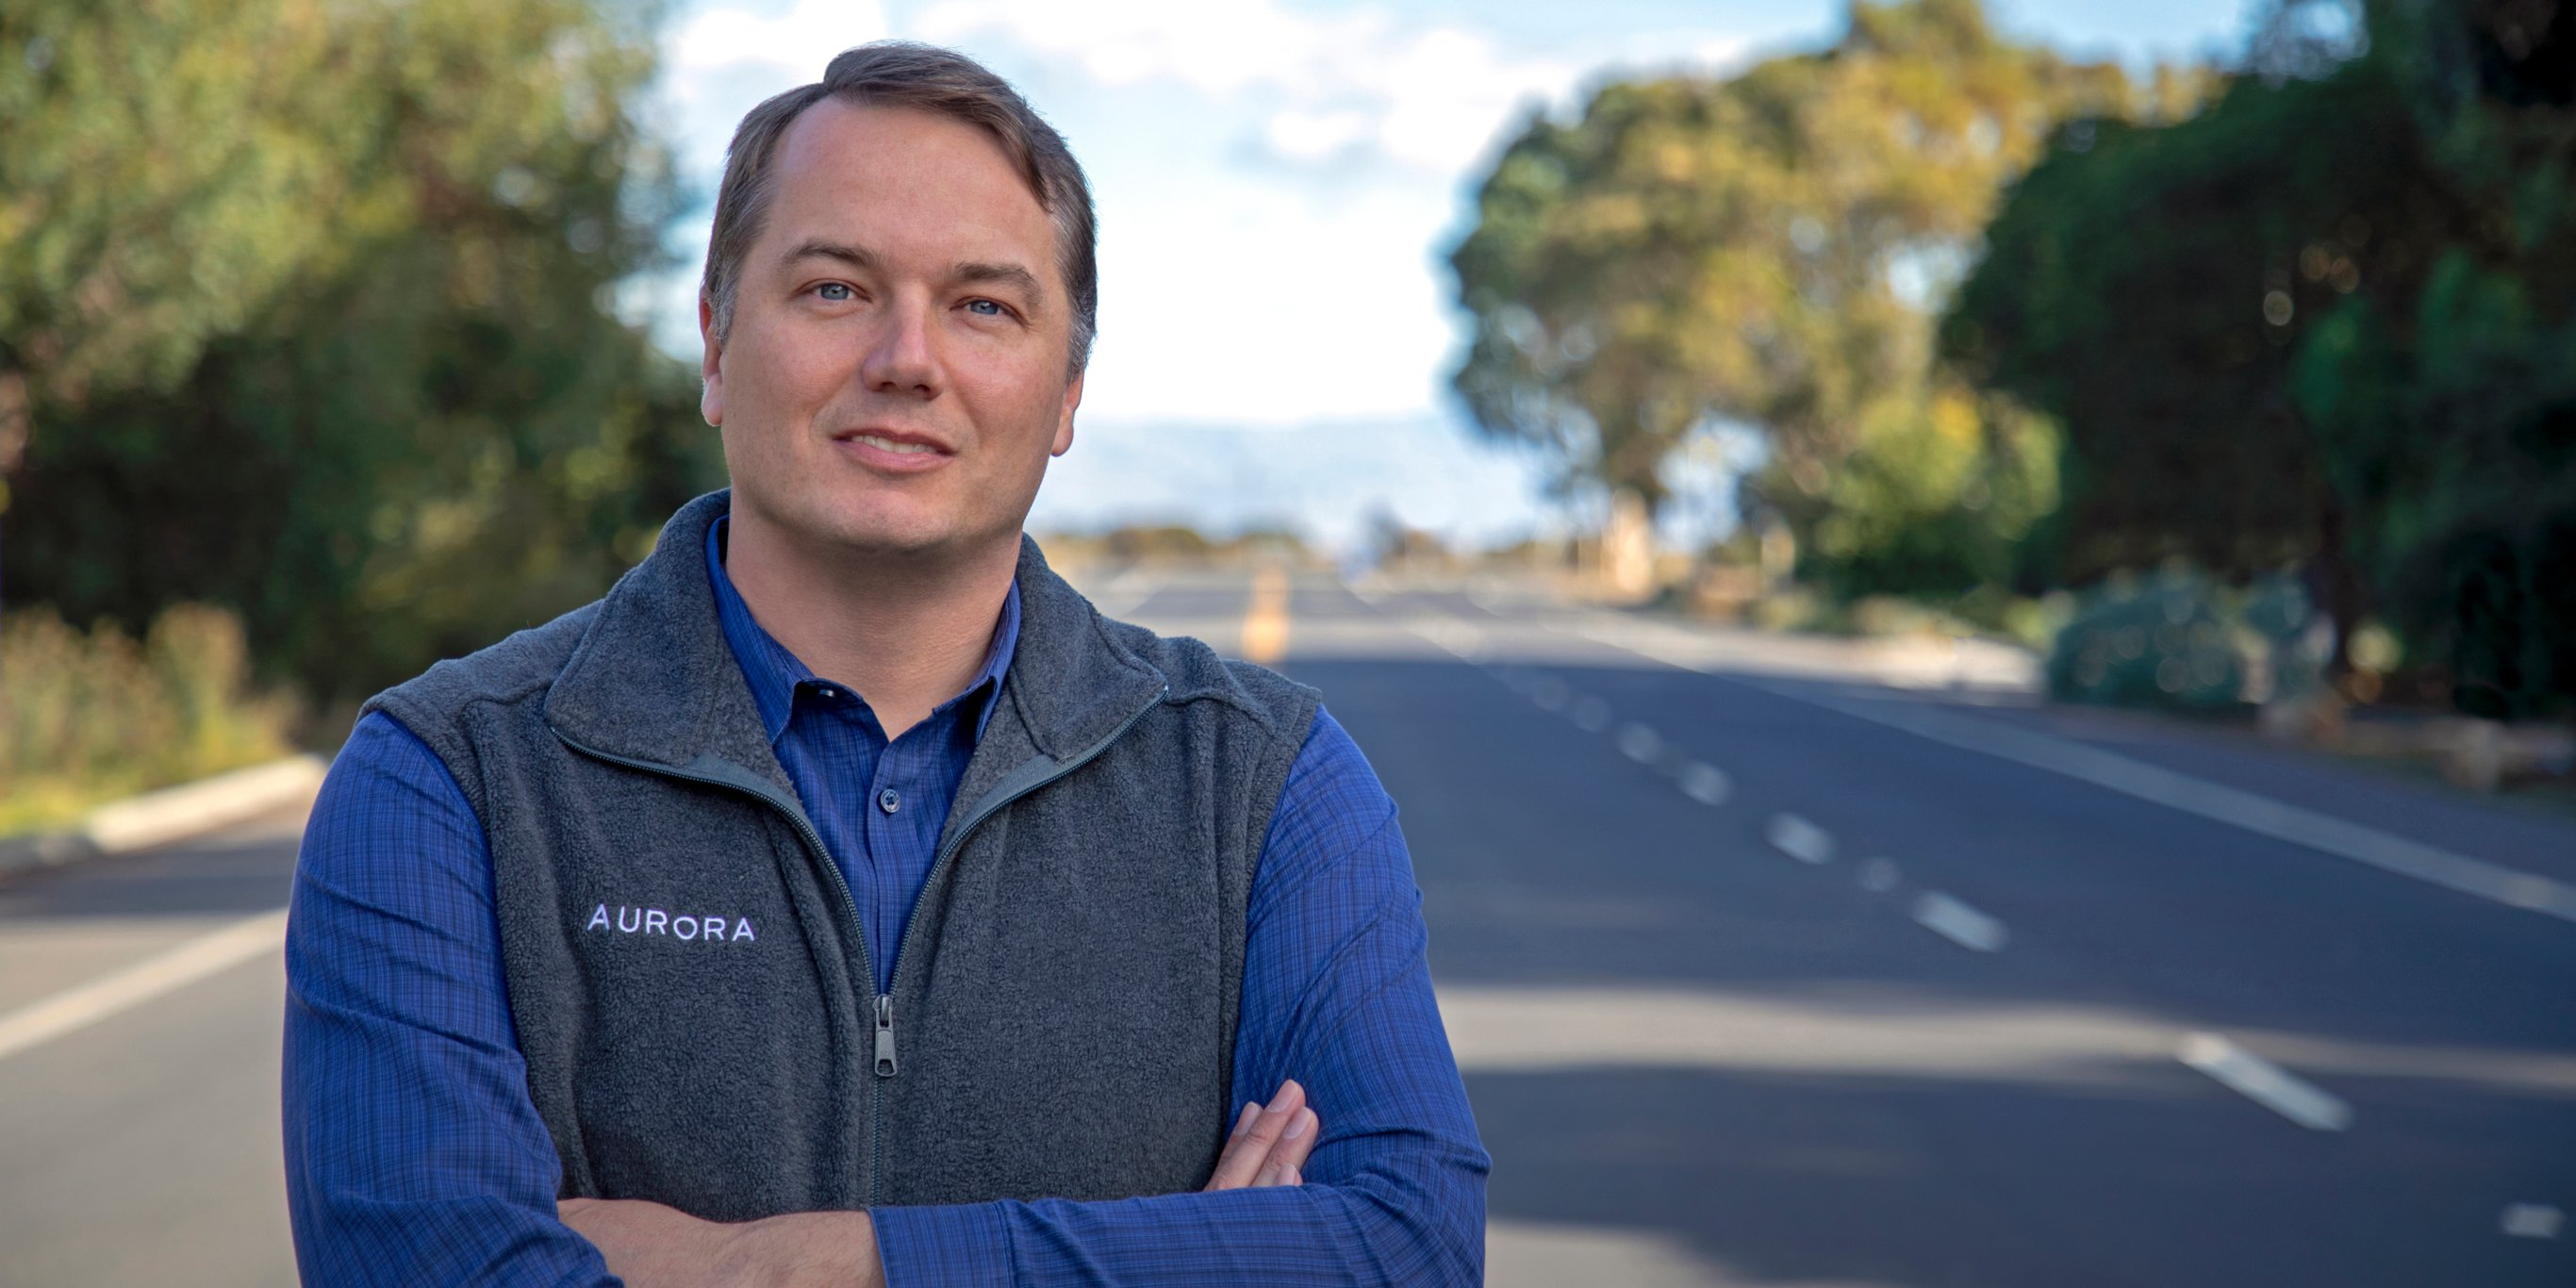 The CEO of $2.5 billion Aurora doesn't allow meetings for the first 3 hours of the day. Here's why he's betting on focus to win in a crowded self-driving car race. (GOOG, GOOGL)